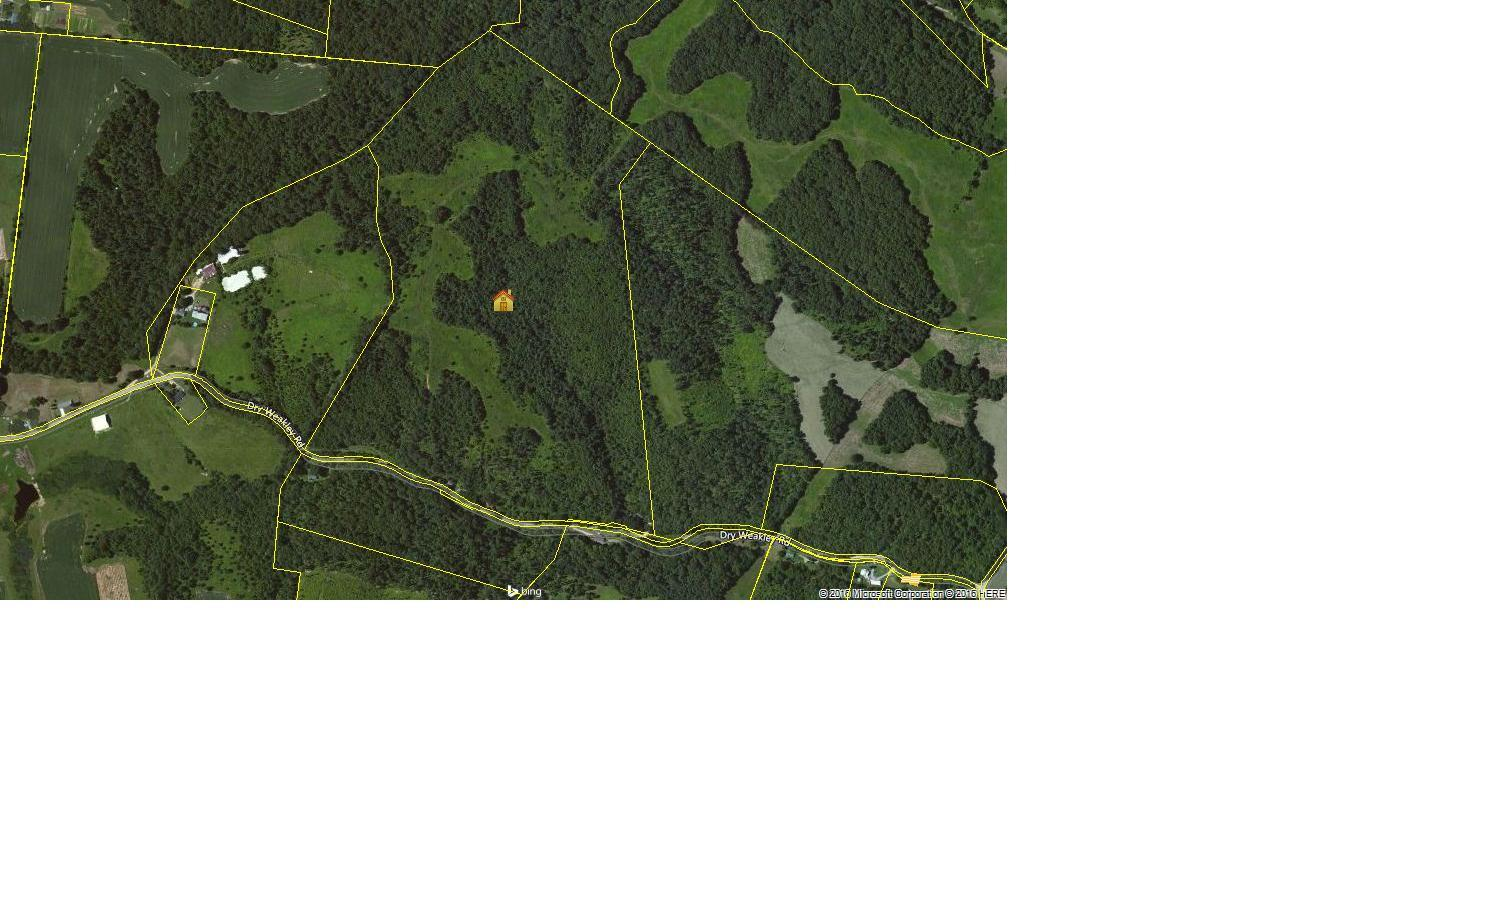 Image of  for Sale near Ethridge, Tennessee, in Lawrence County: 109.5 acres